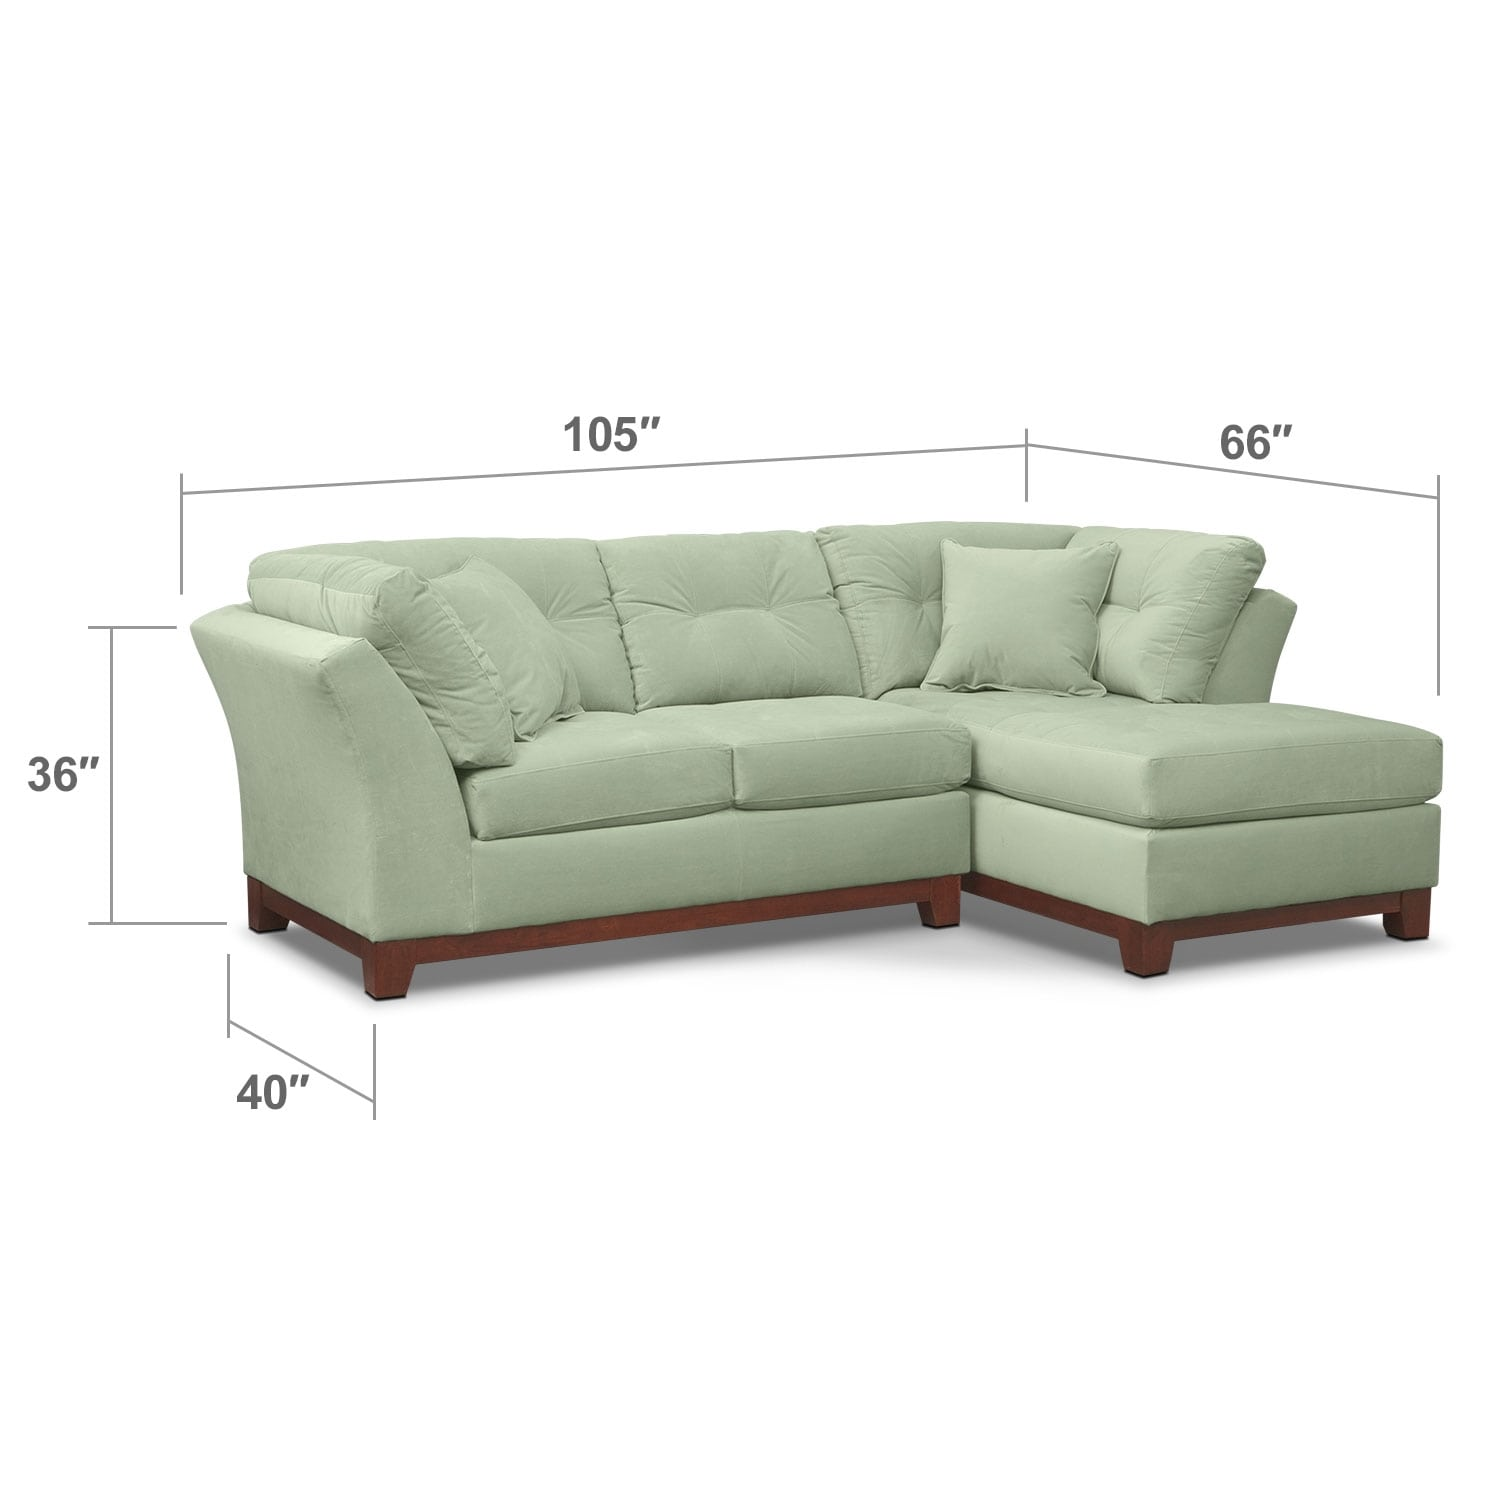 Living Room Furniture - Solace Spa II 2 Pc. Sectional (Alternate Reverse)